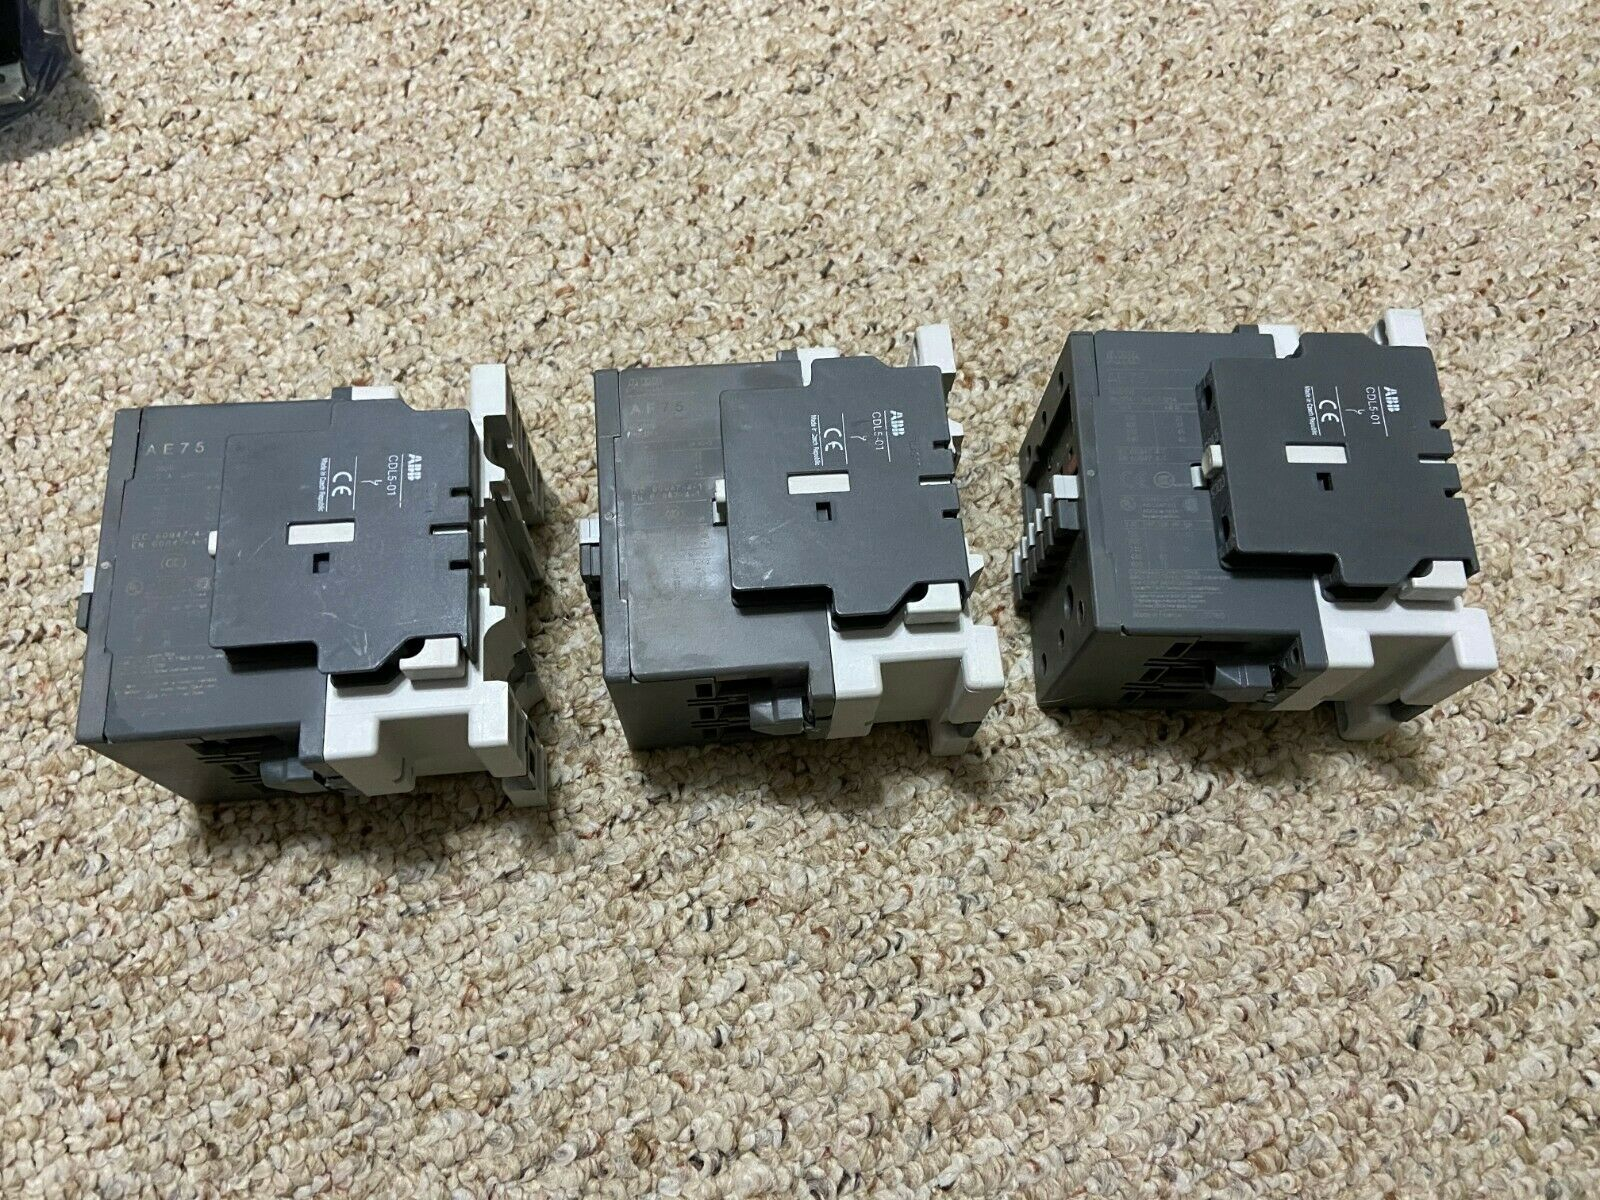 ABB 1SBH13600 1R2122 Contactor with 24VAC 20-60 VDC coil